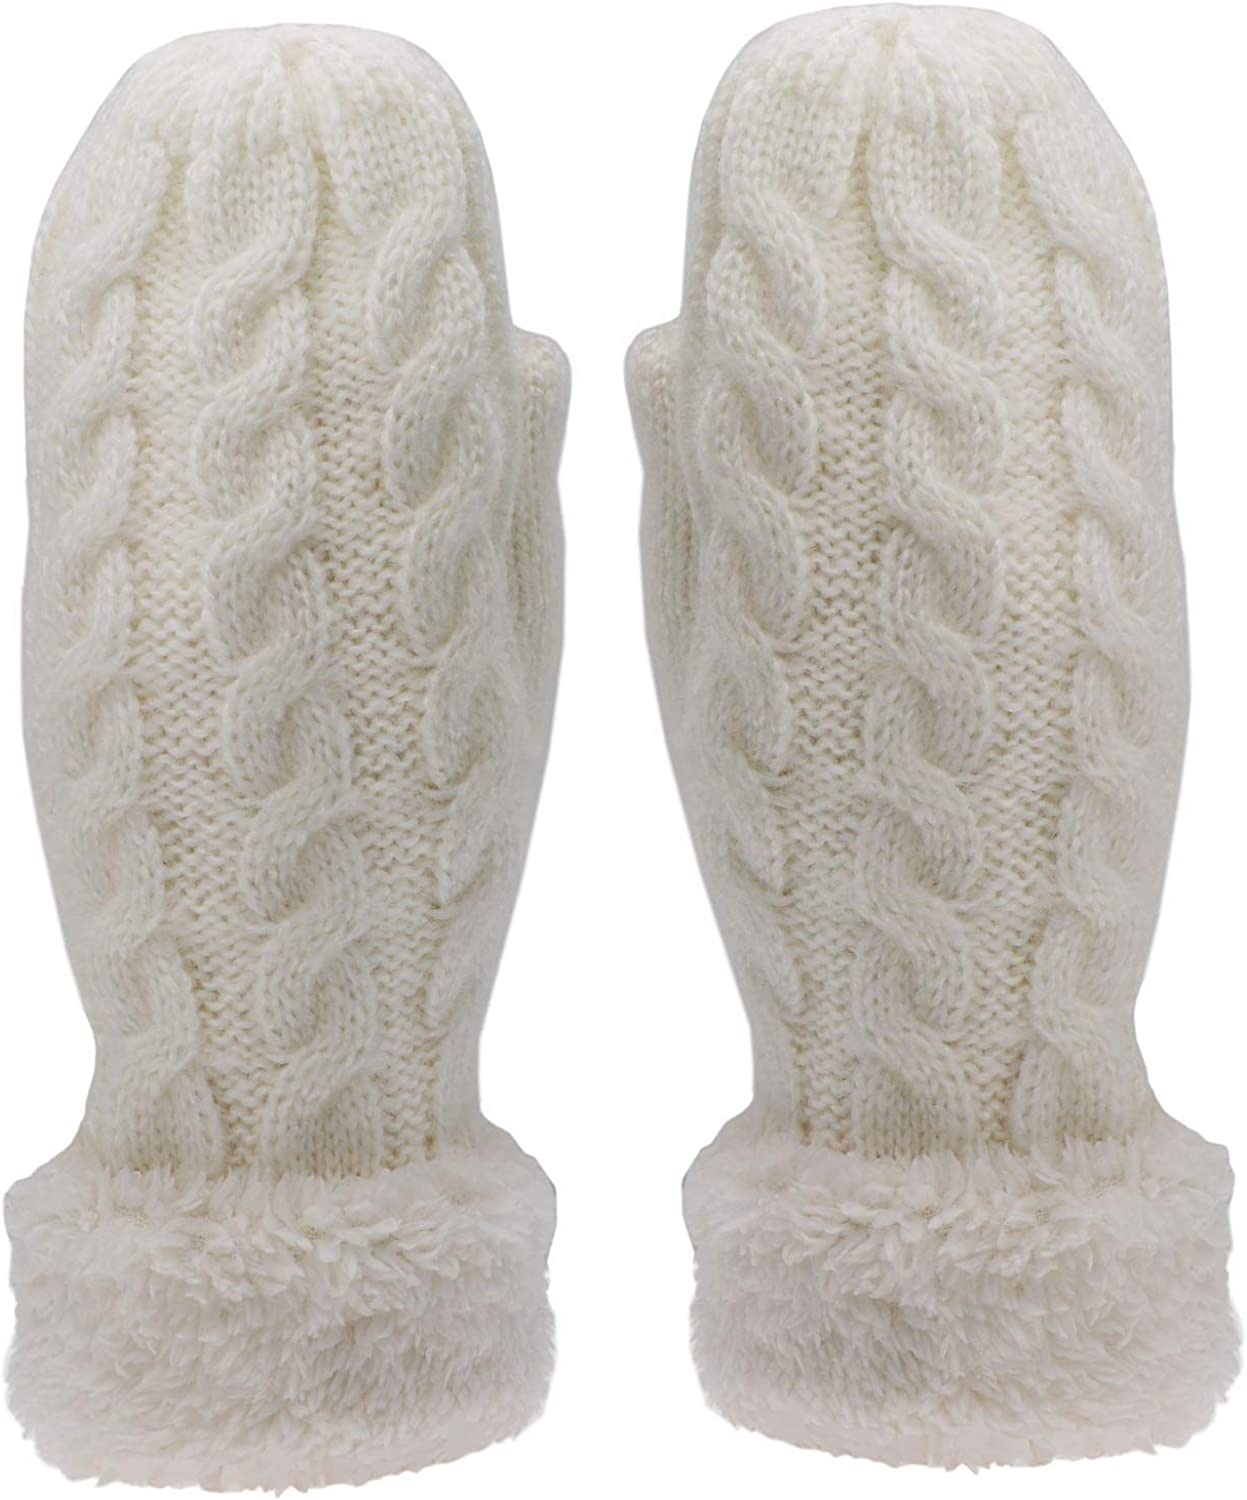 Women's Winter Mittens Cold Weather Warm Soft Lining Thick Cozy Cable Knit Thick Gloves